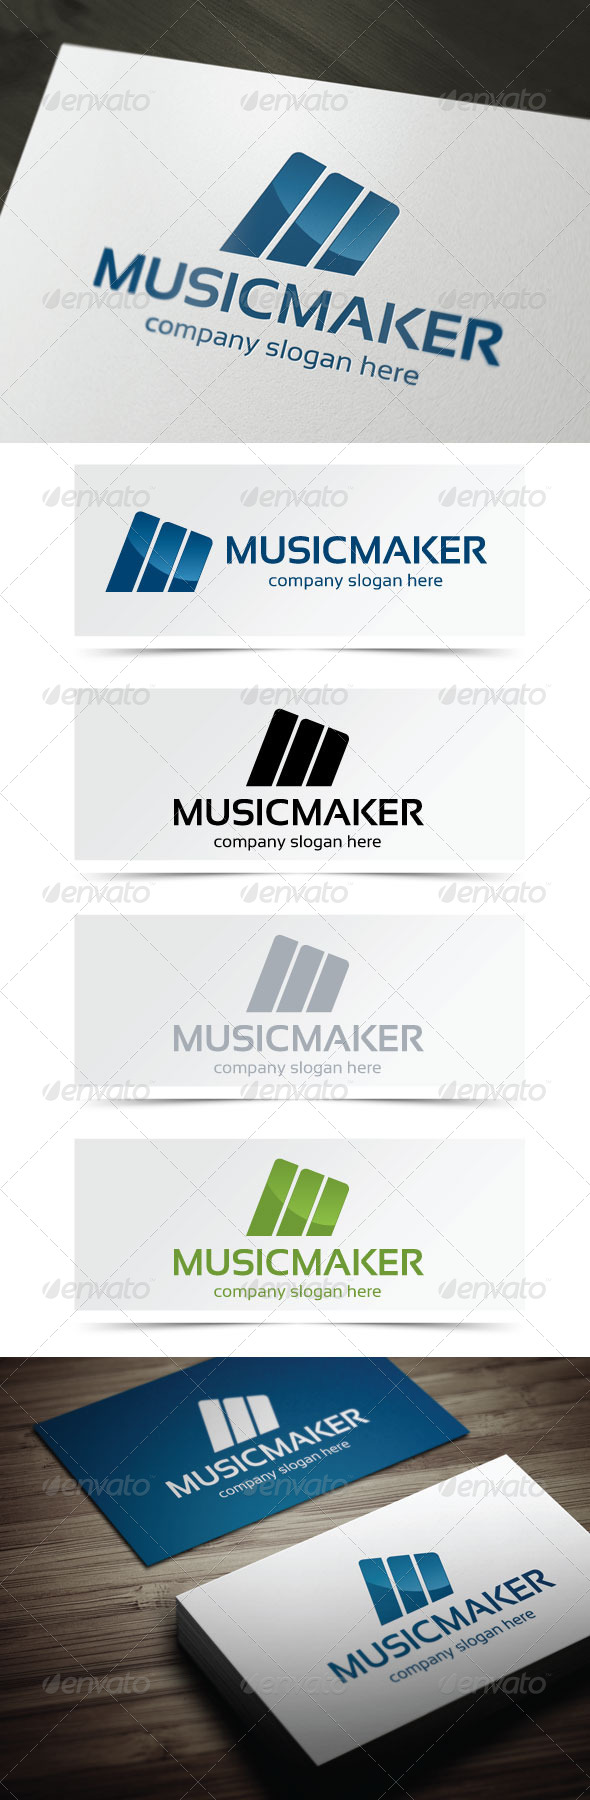 Music Maker - Letters Logo Templates